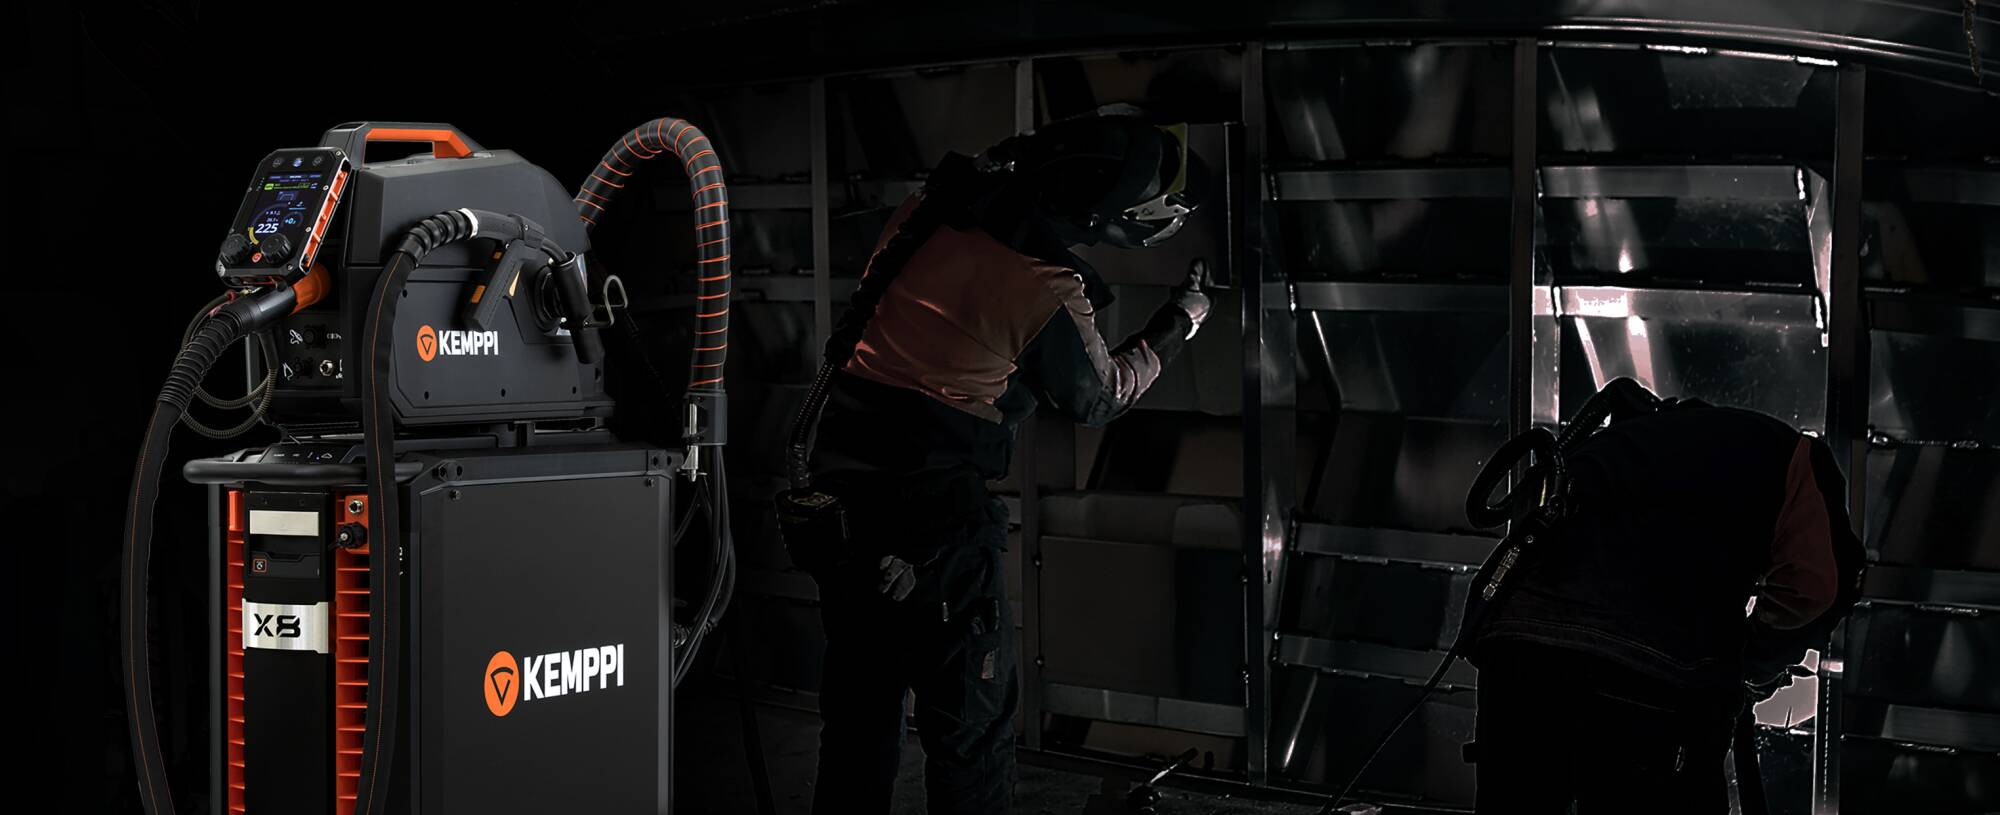 X8 Mig Welder The Future Of Welding Is Here Kemppi Wiring A 50 Amp Plug